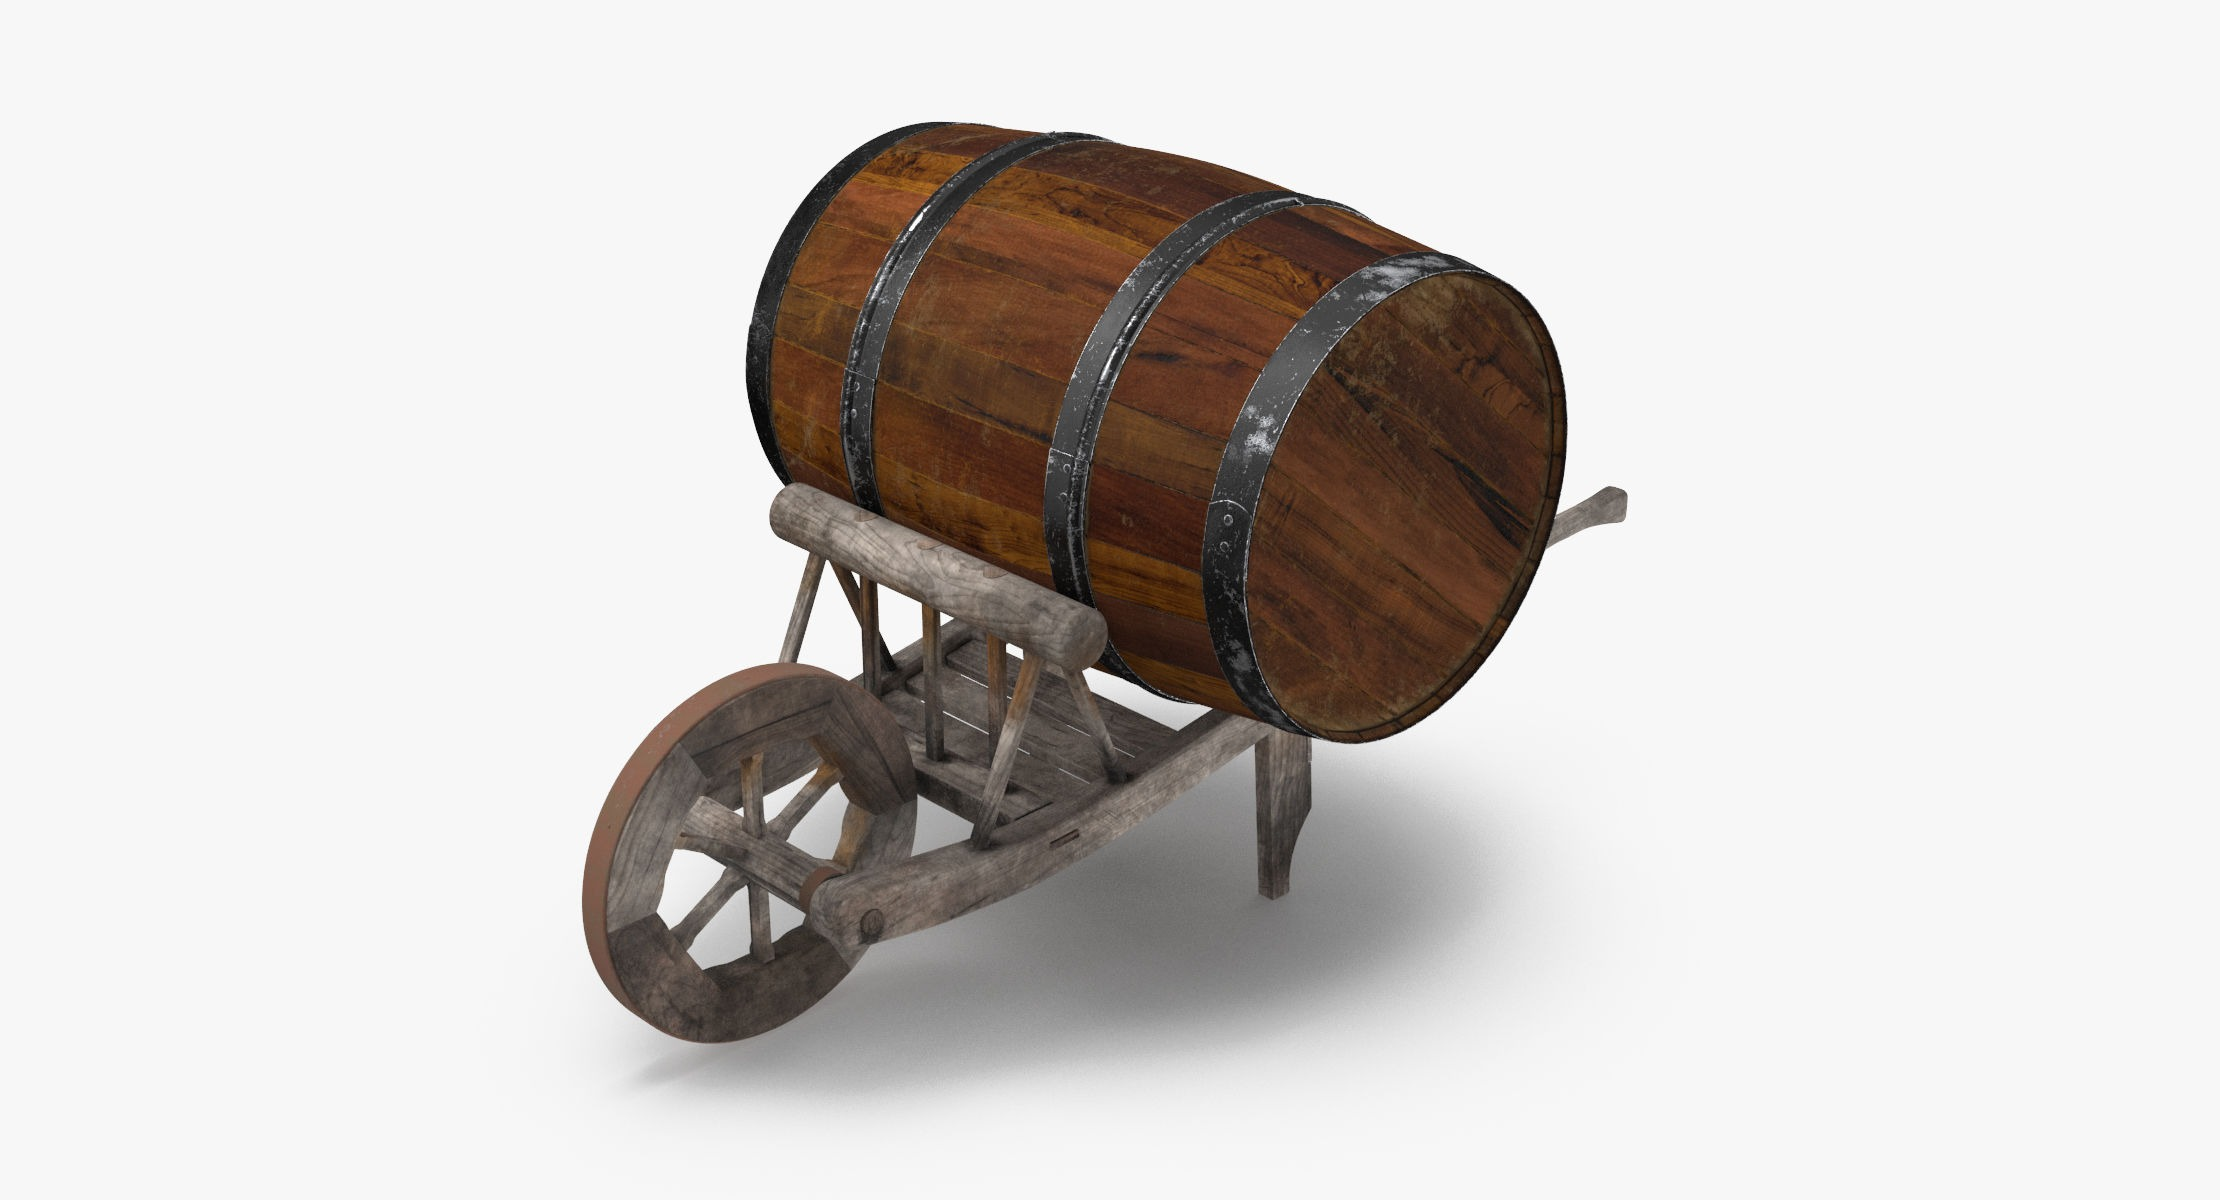 Medieval Wheelbarrow and Barrel - reel 1